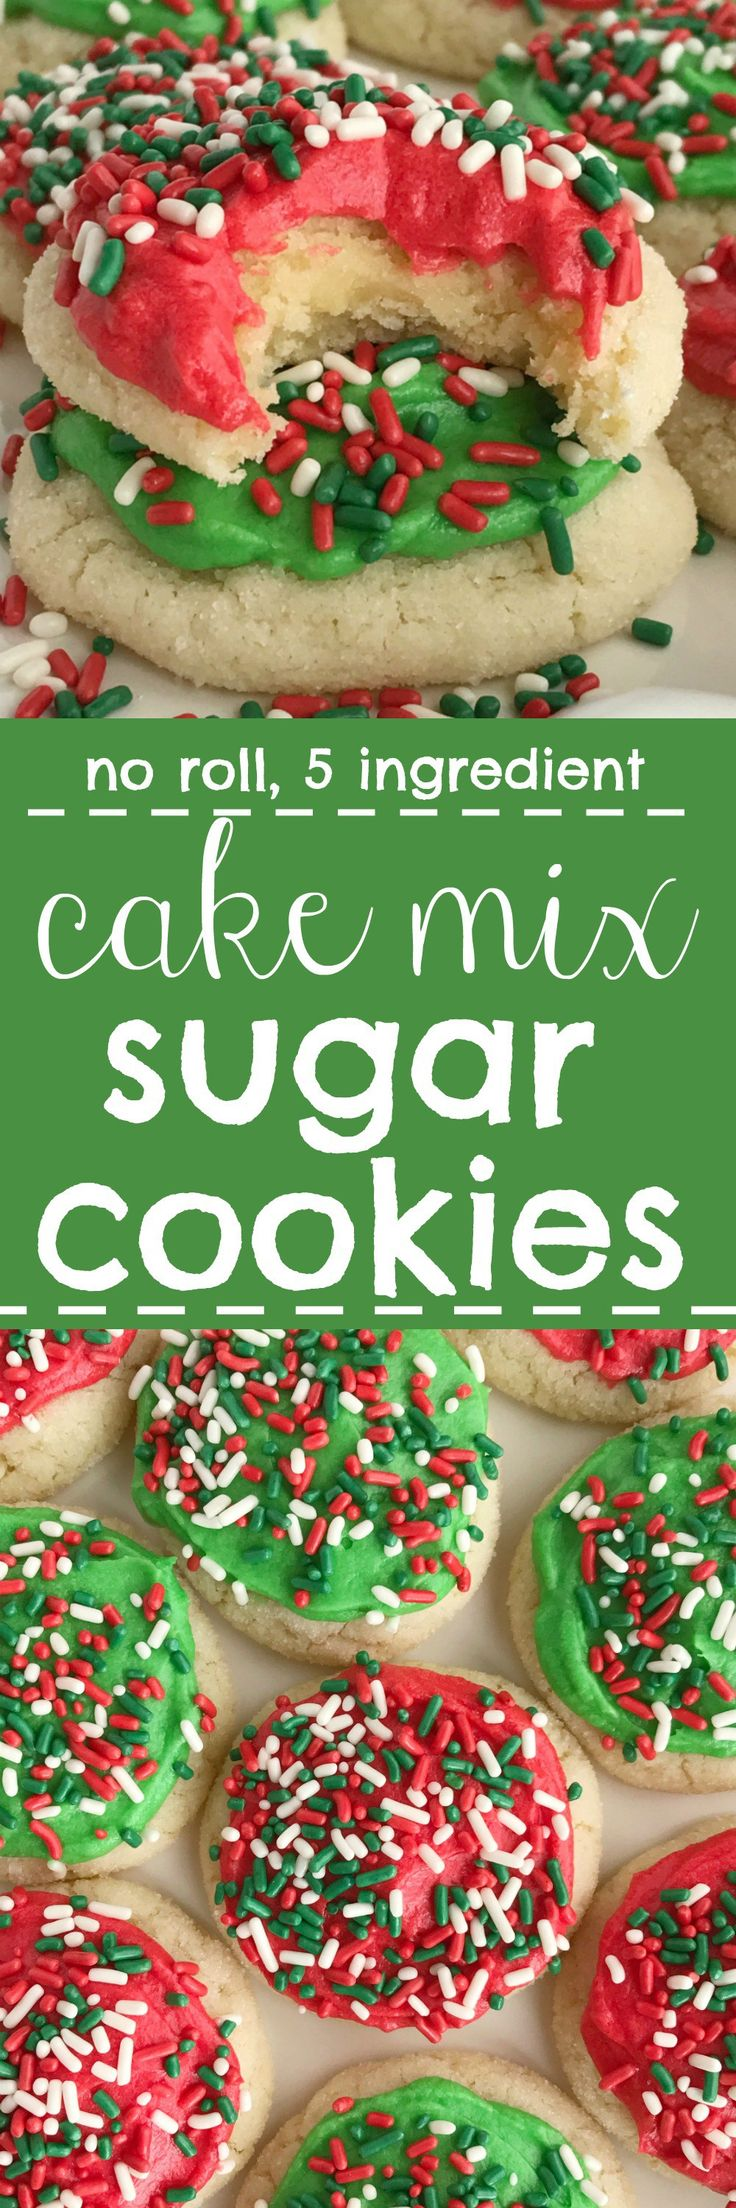 Easy Cake Mix Sugar Cookies | Sugar Cookies | Christmas Cookies | 5 Ingredient | No roll sugar cookies | No chill sugar cookies | www.togetherasfamily.com #christmascookies #cakemixcookies #sugarcookies